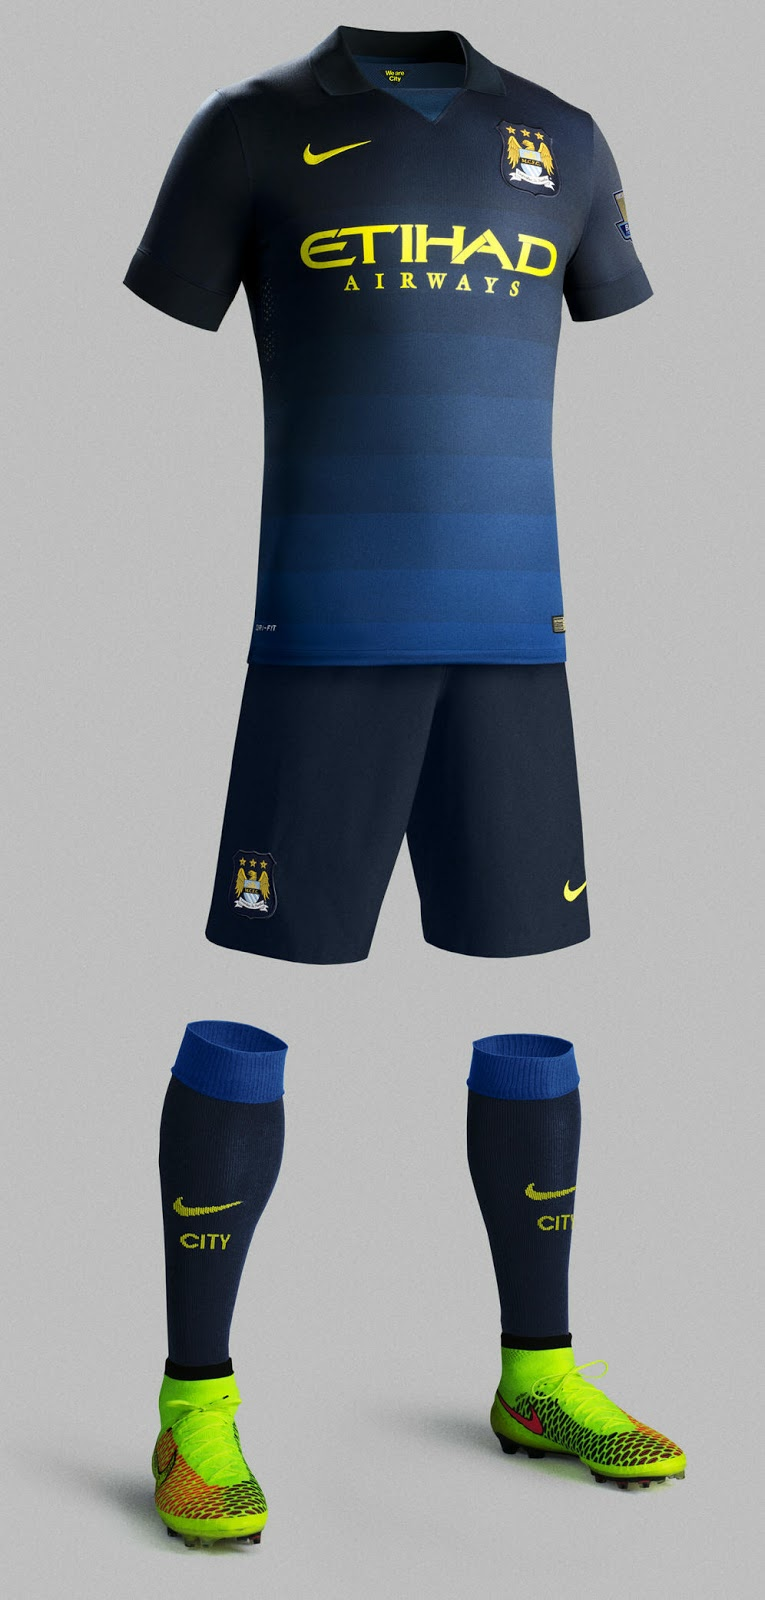 new manchester city 14-15 kits